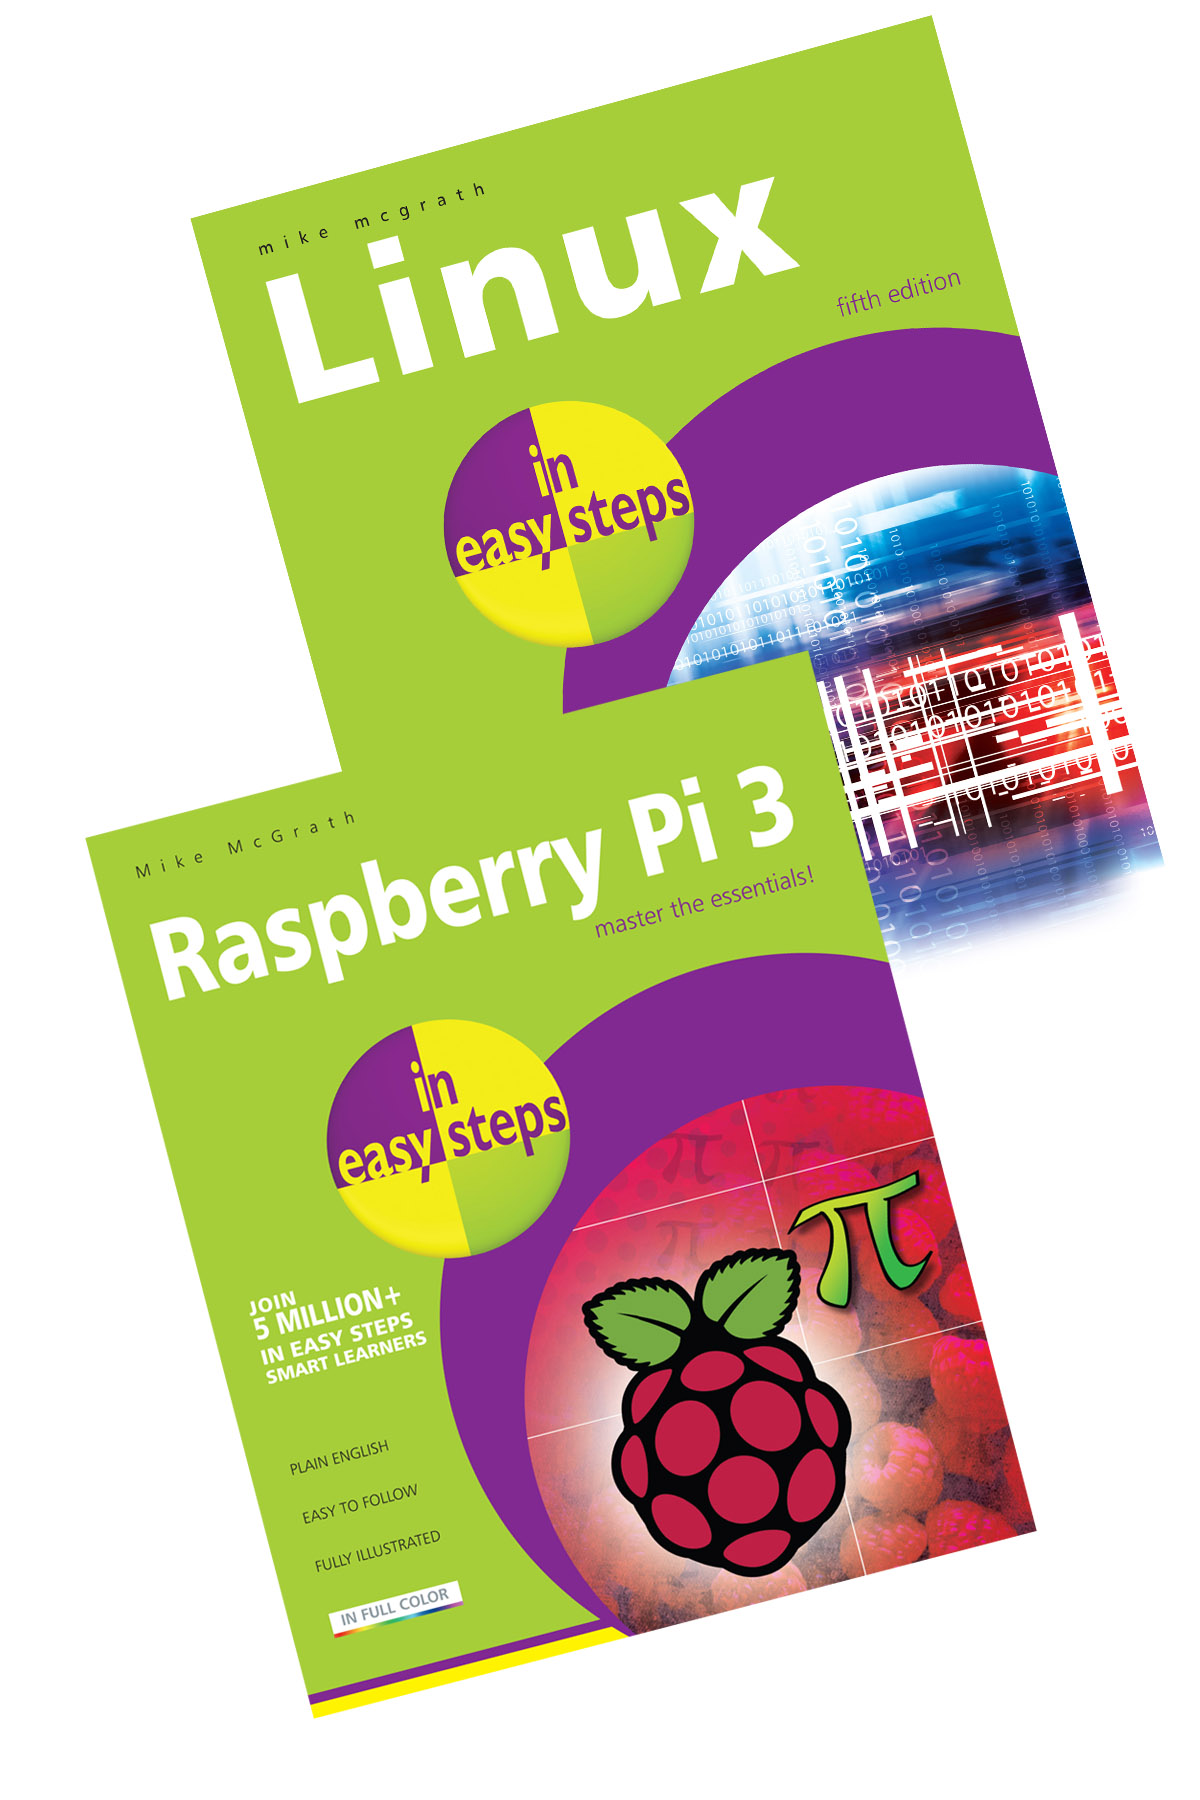 Linux Raspberry Pi 3 in easy steps